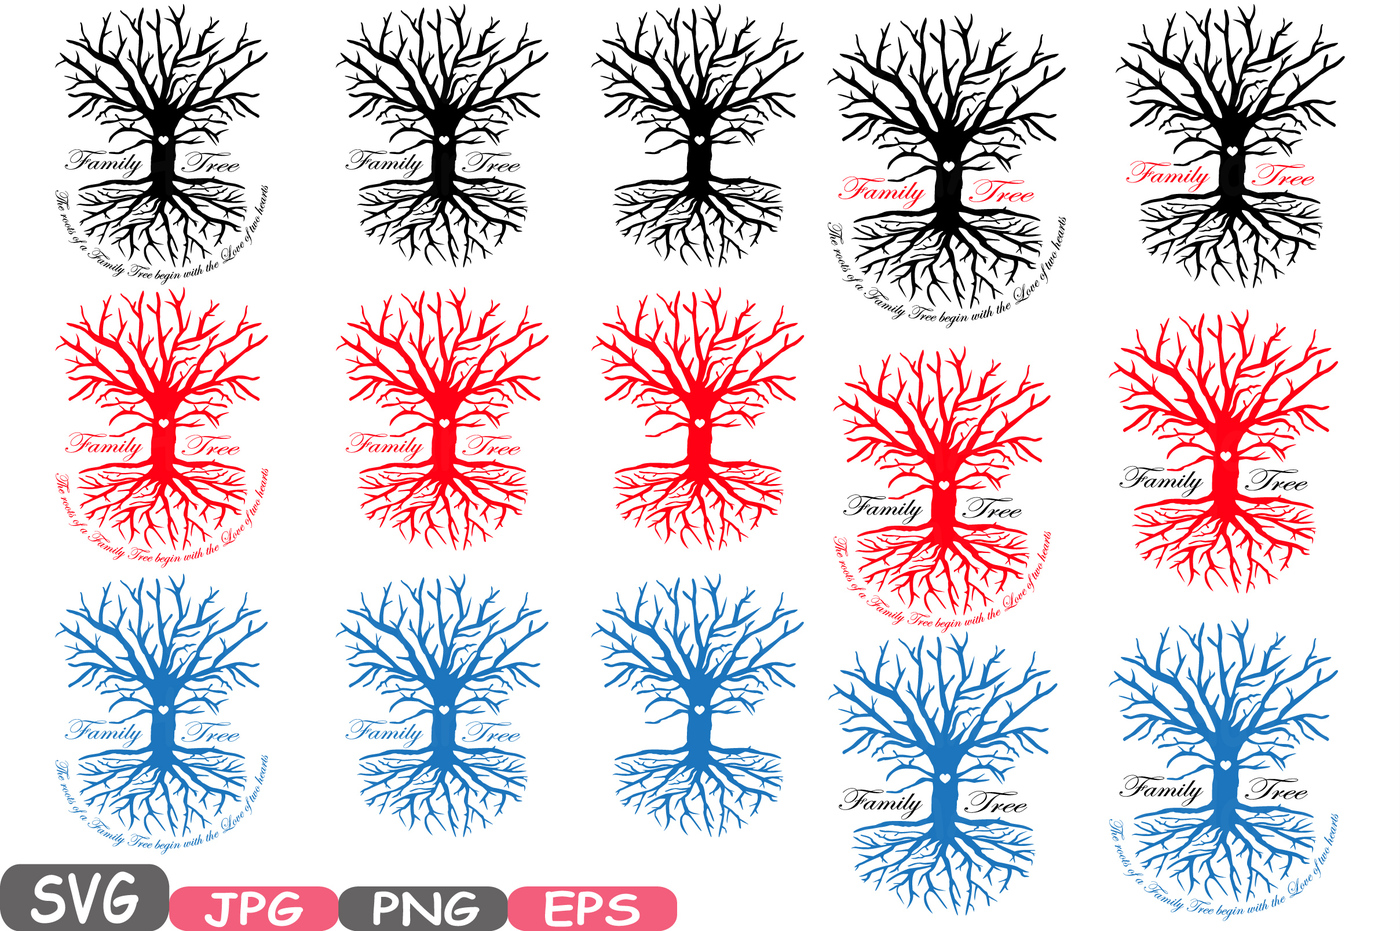 Roots clipart wit. Family tree svg word